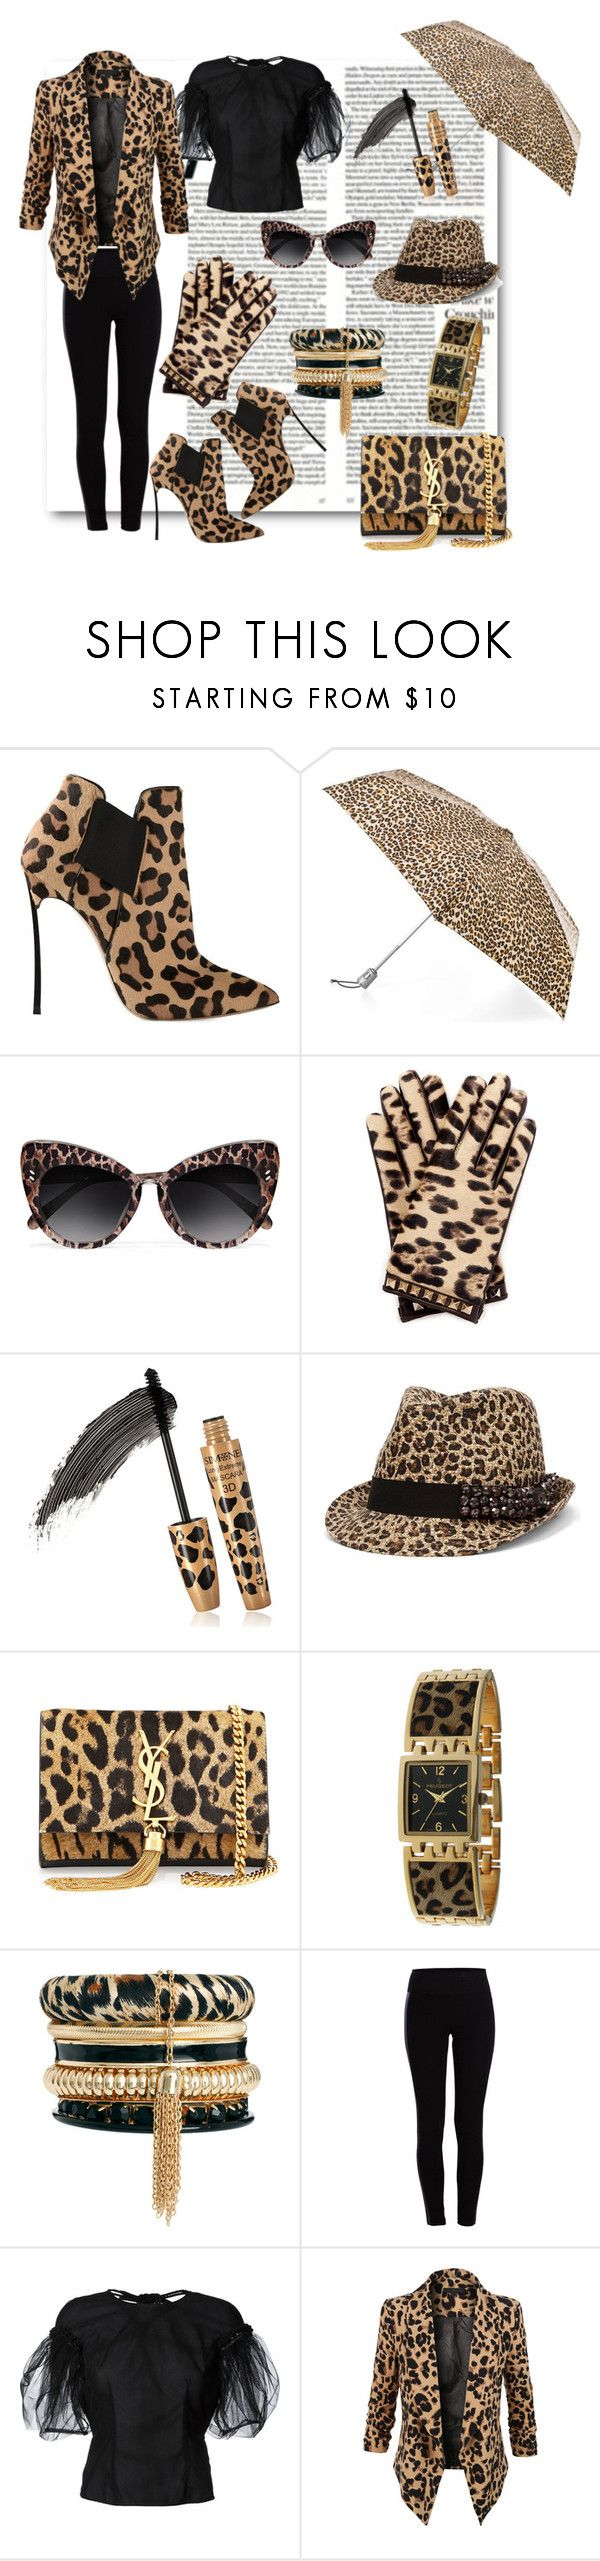 """""""Spring Boots"""" by atenaide86 ❤ liked on Polyvore featuring Casadei, Totes, STELLA McCARTNEY, Olive & Pique, Yves Saint Laurent, Peugeot, River Island, Pieces, Simone Rocha and LE3NO"""